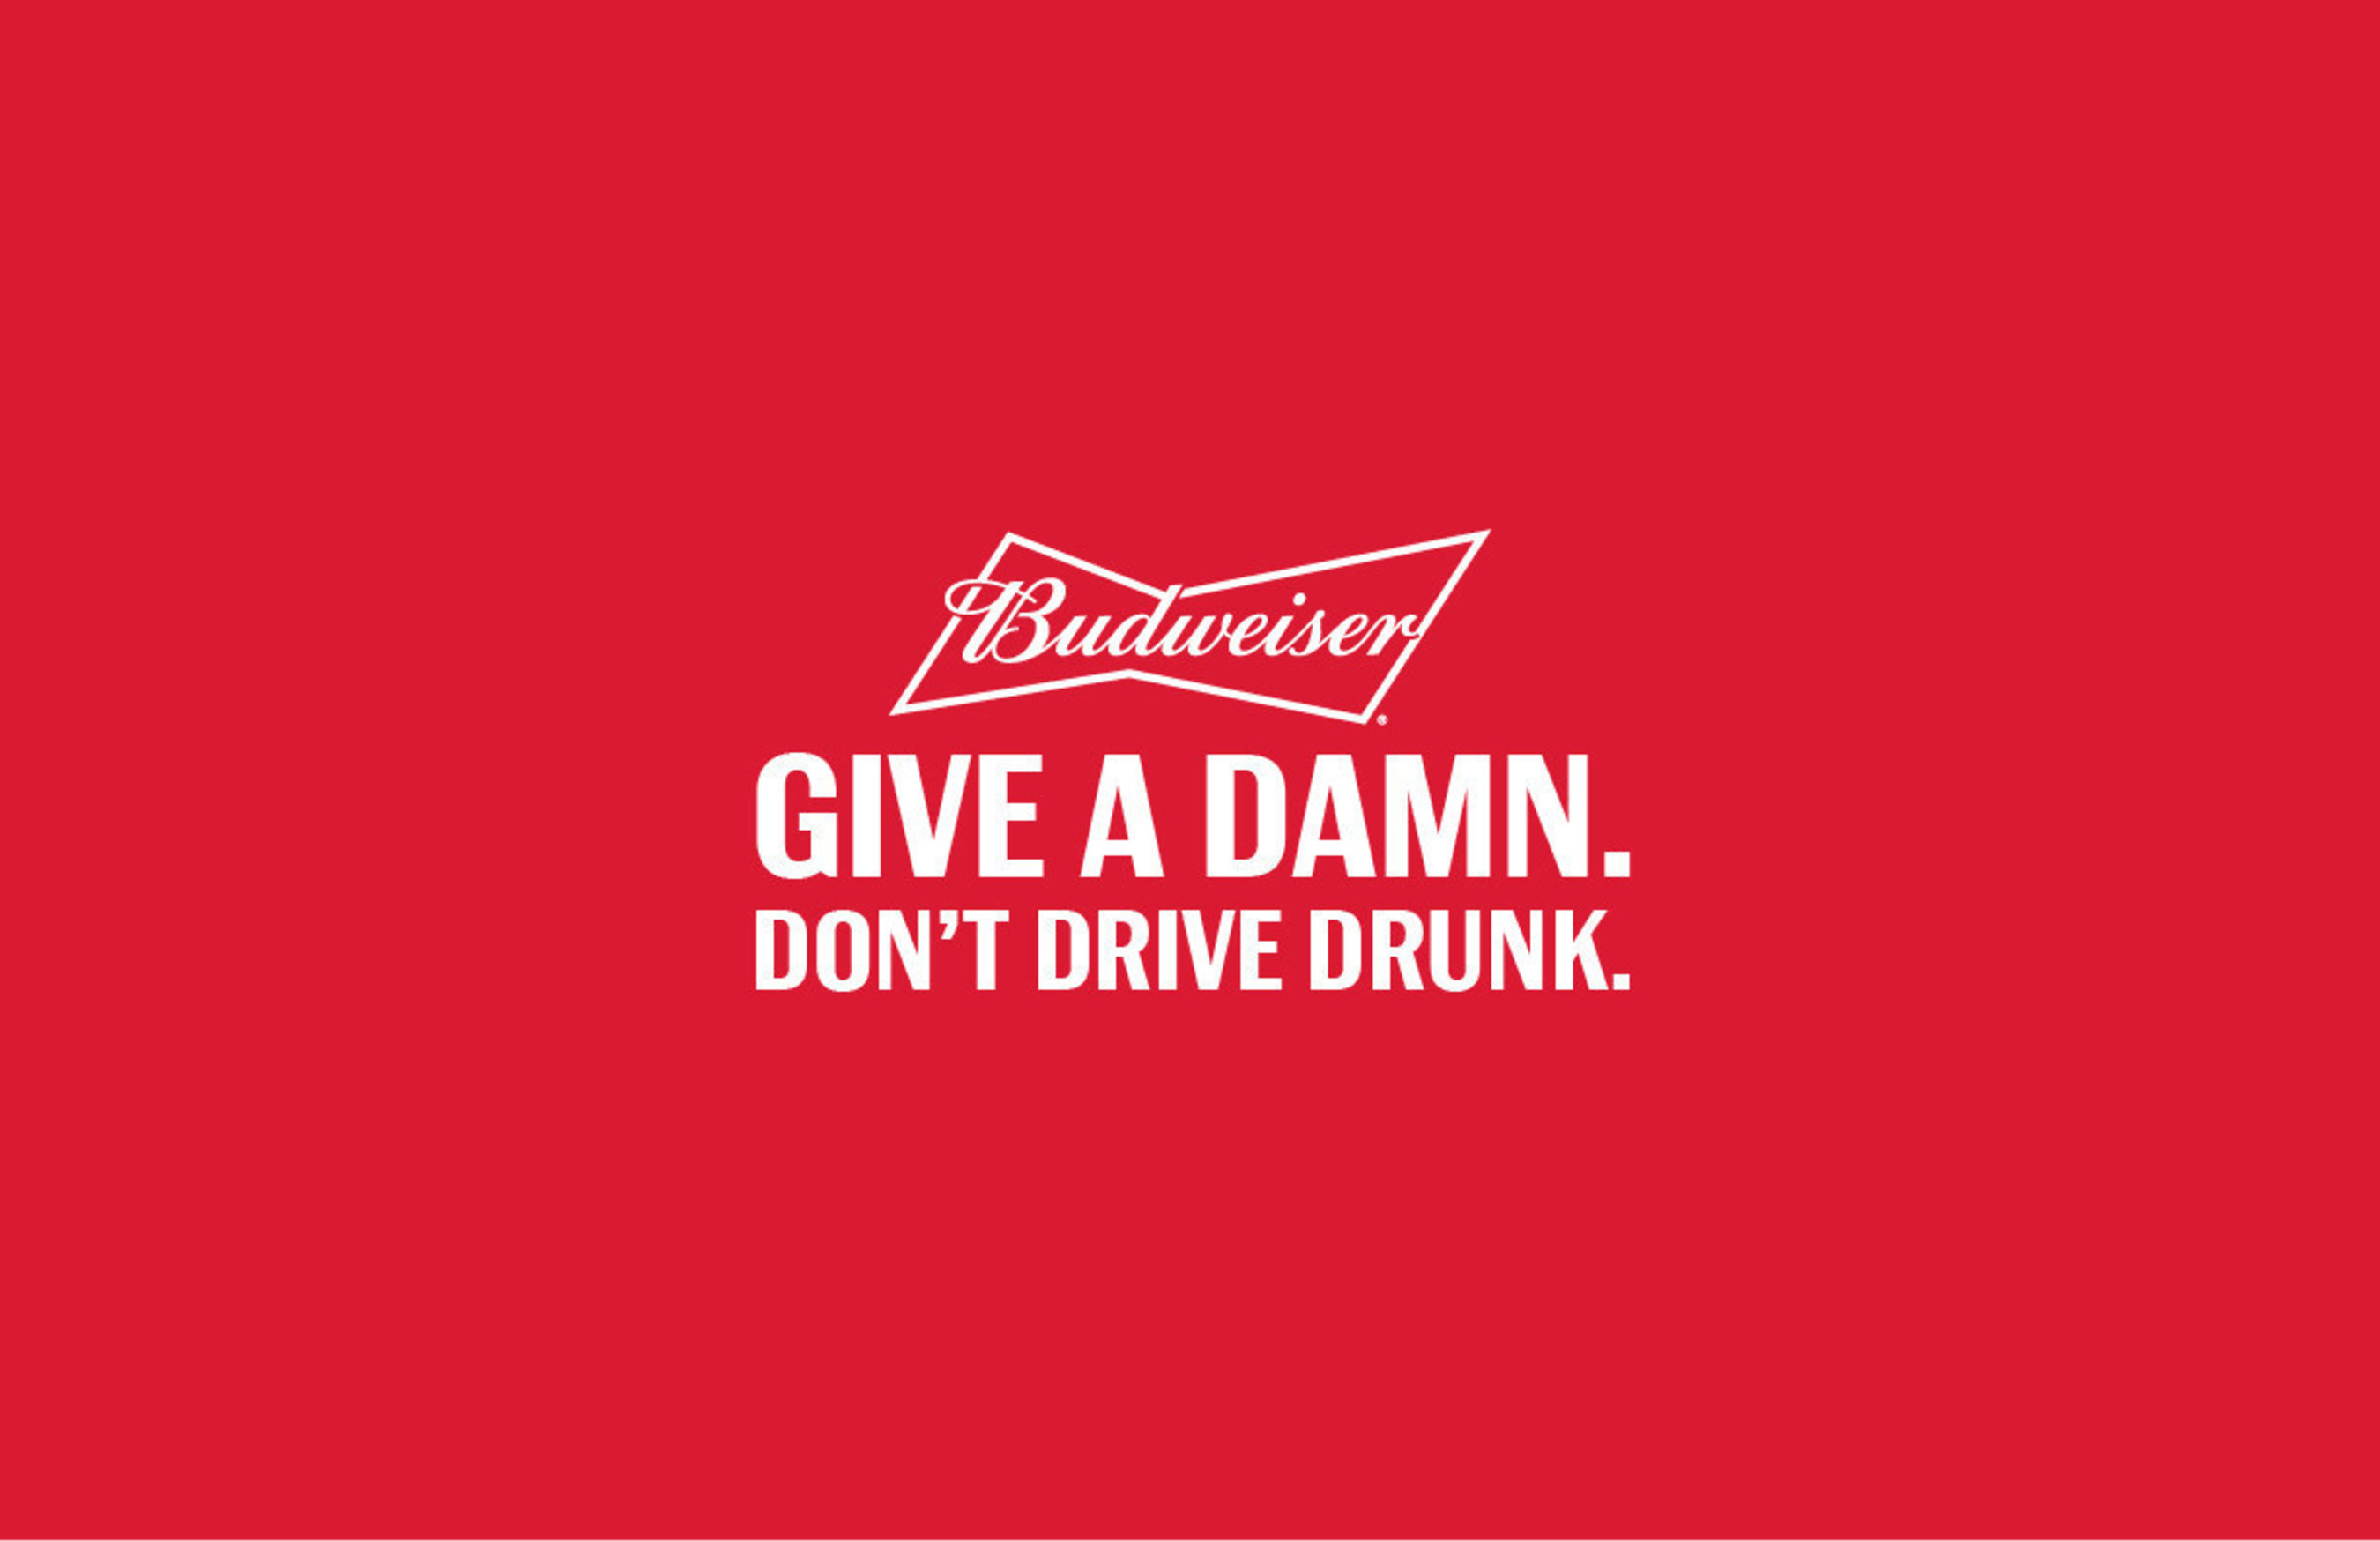 Budweiser and Lyft Join Forces to Help Reduce Drunk Driving